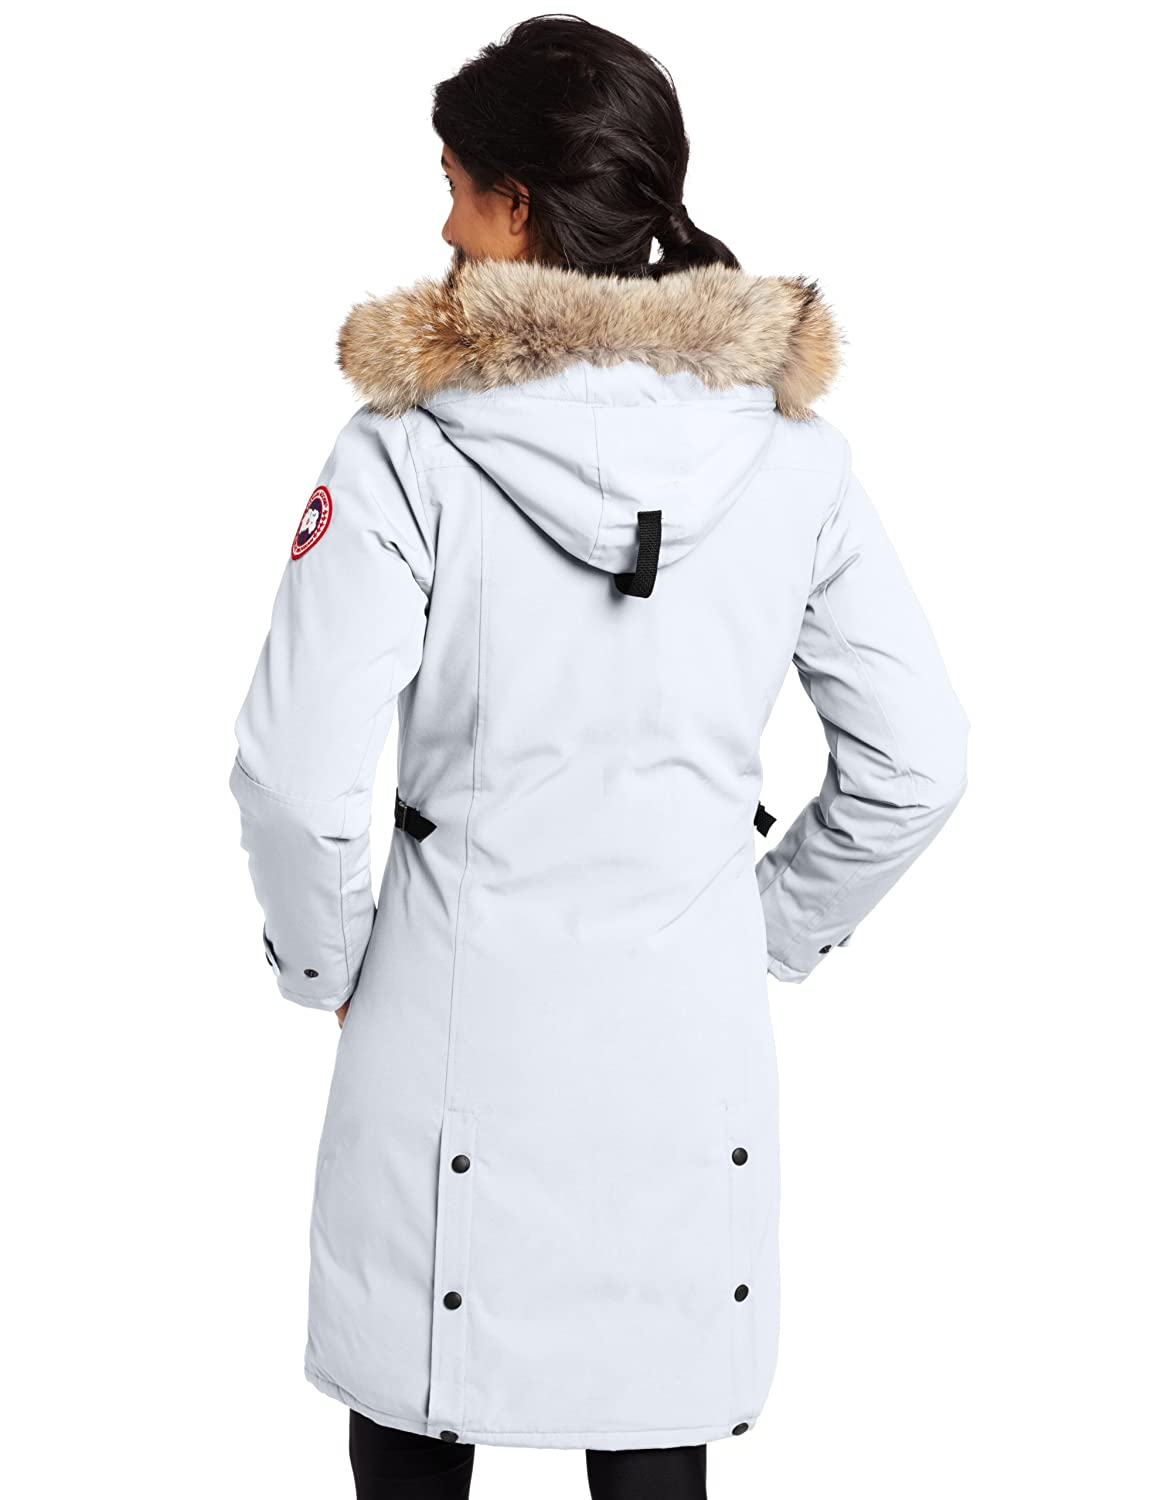 Canada Goose' ladies kensington parka reviews